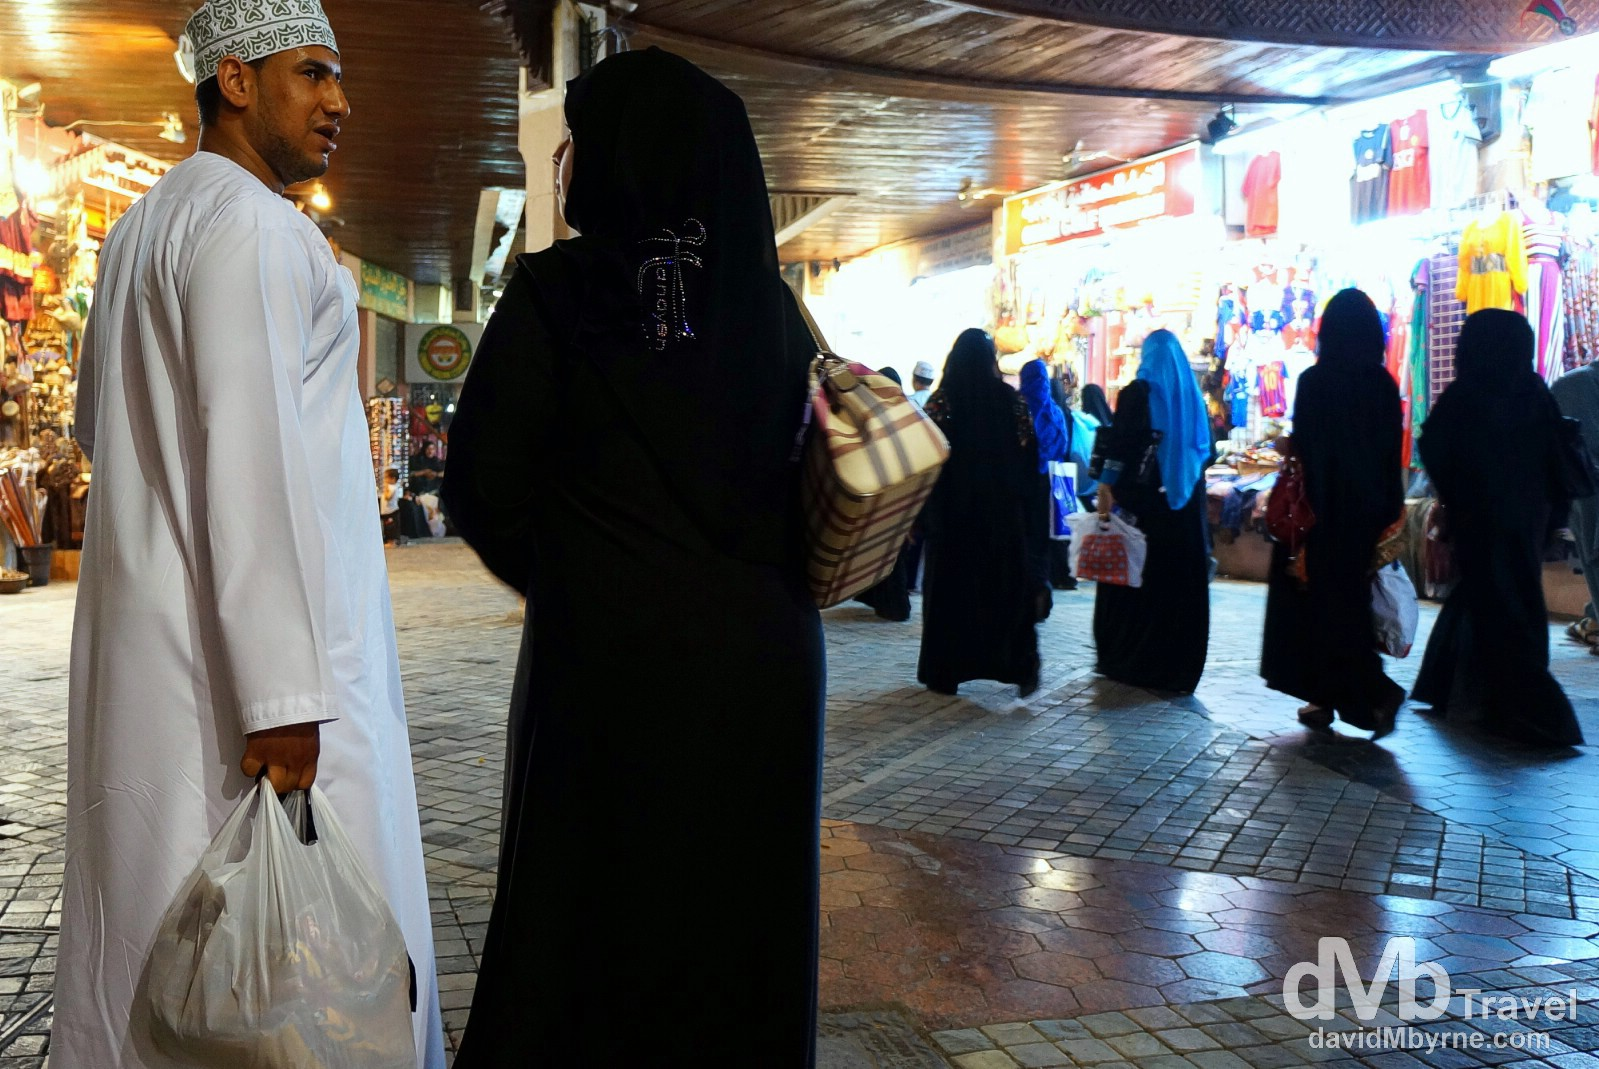 In the maze-like Mutrah Souq (marketplace) in Muscat, Oman. April 25th, 2014.